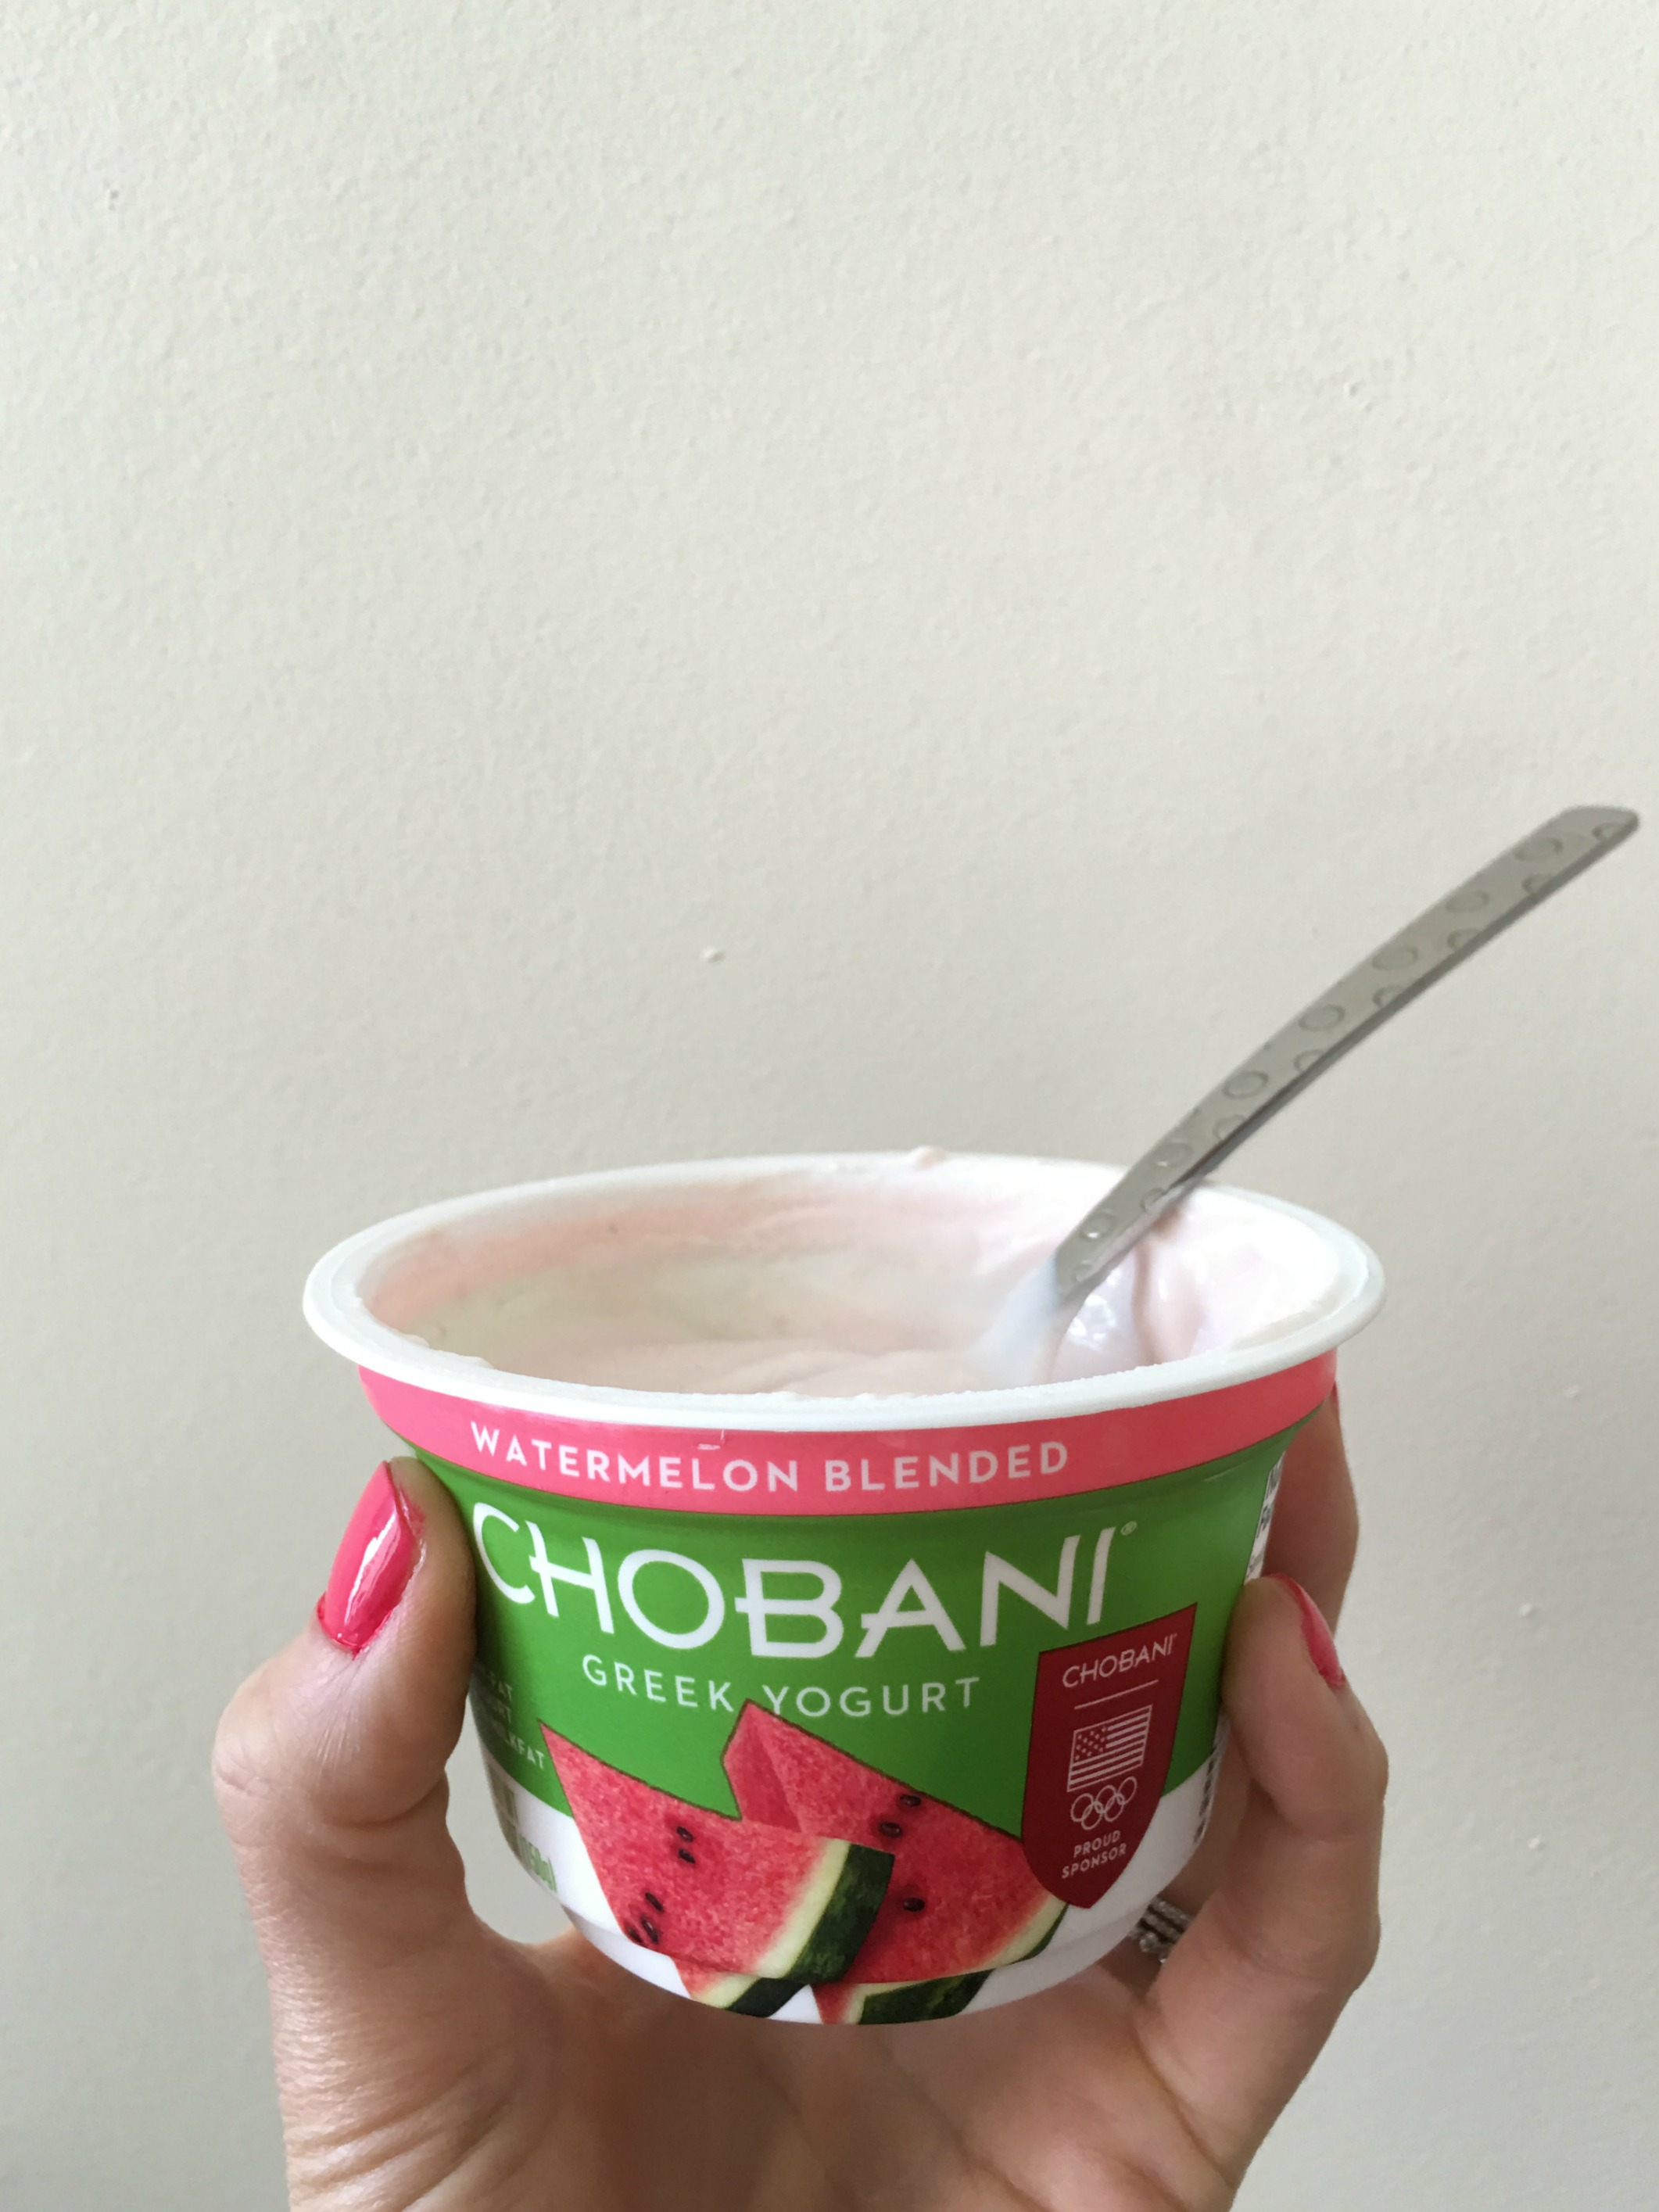 watermelon chobani yogurt